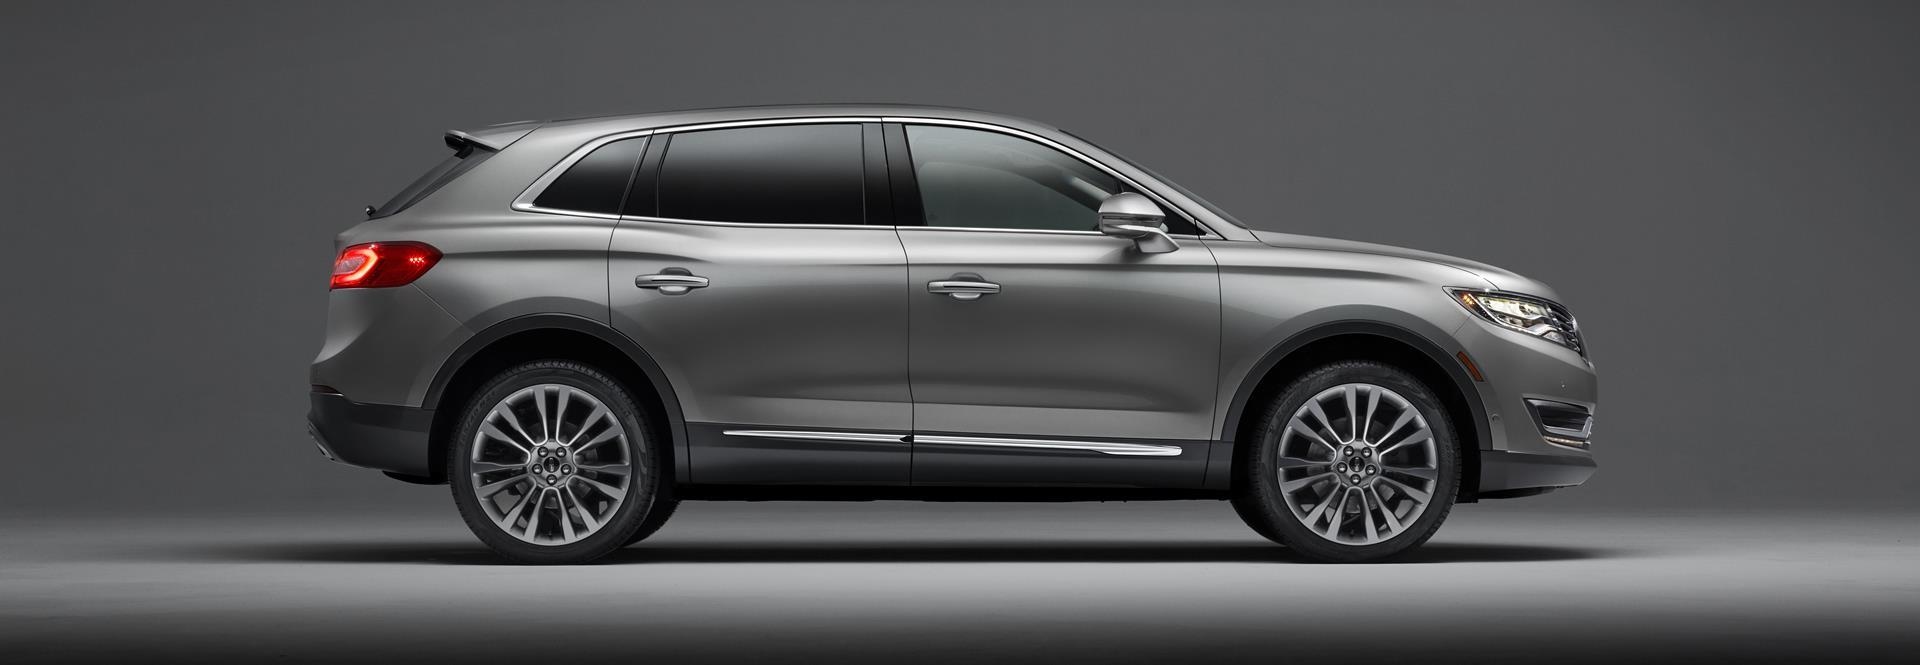 2017 lincoln mkx technical specifications and data engine dimensions and mechanical details. Black Bedroom Furniture Sets. Home Design Ideas